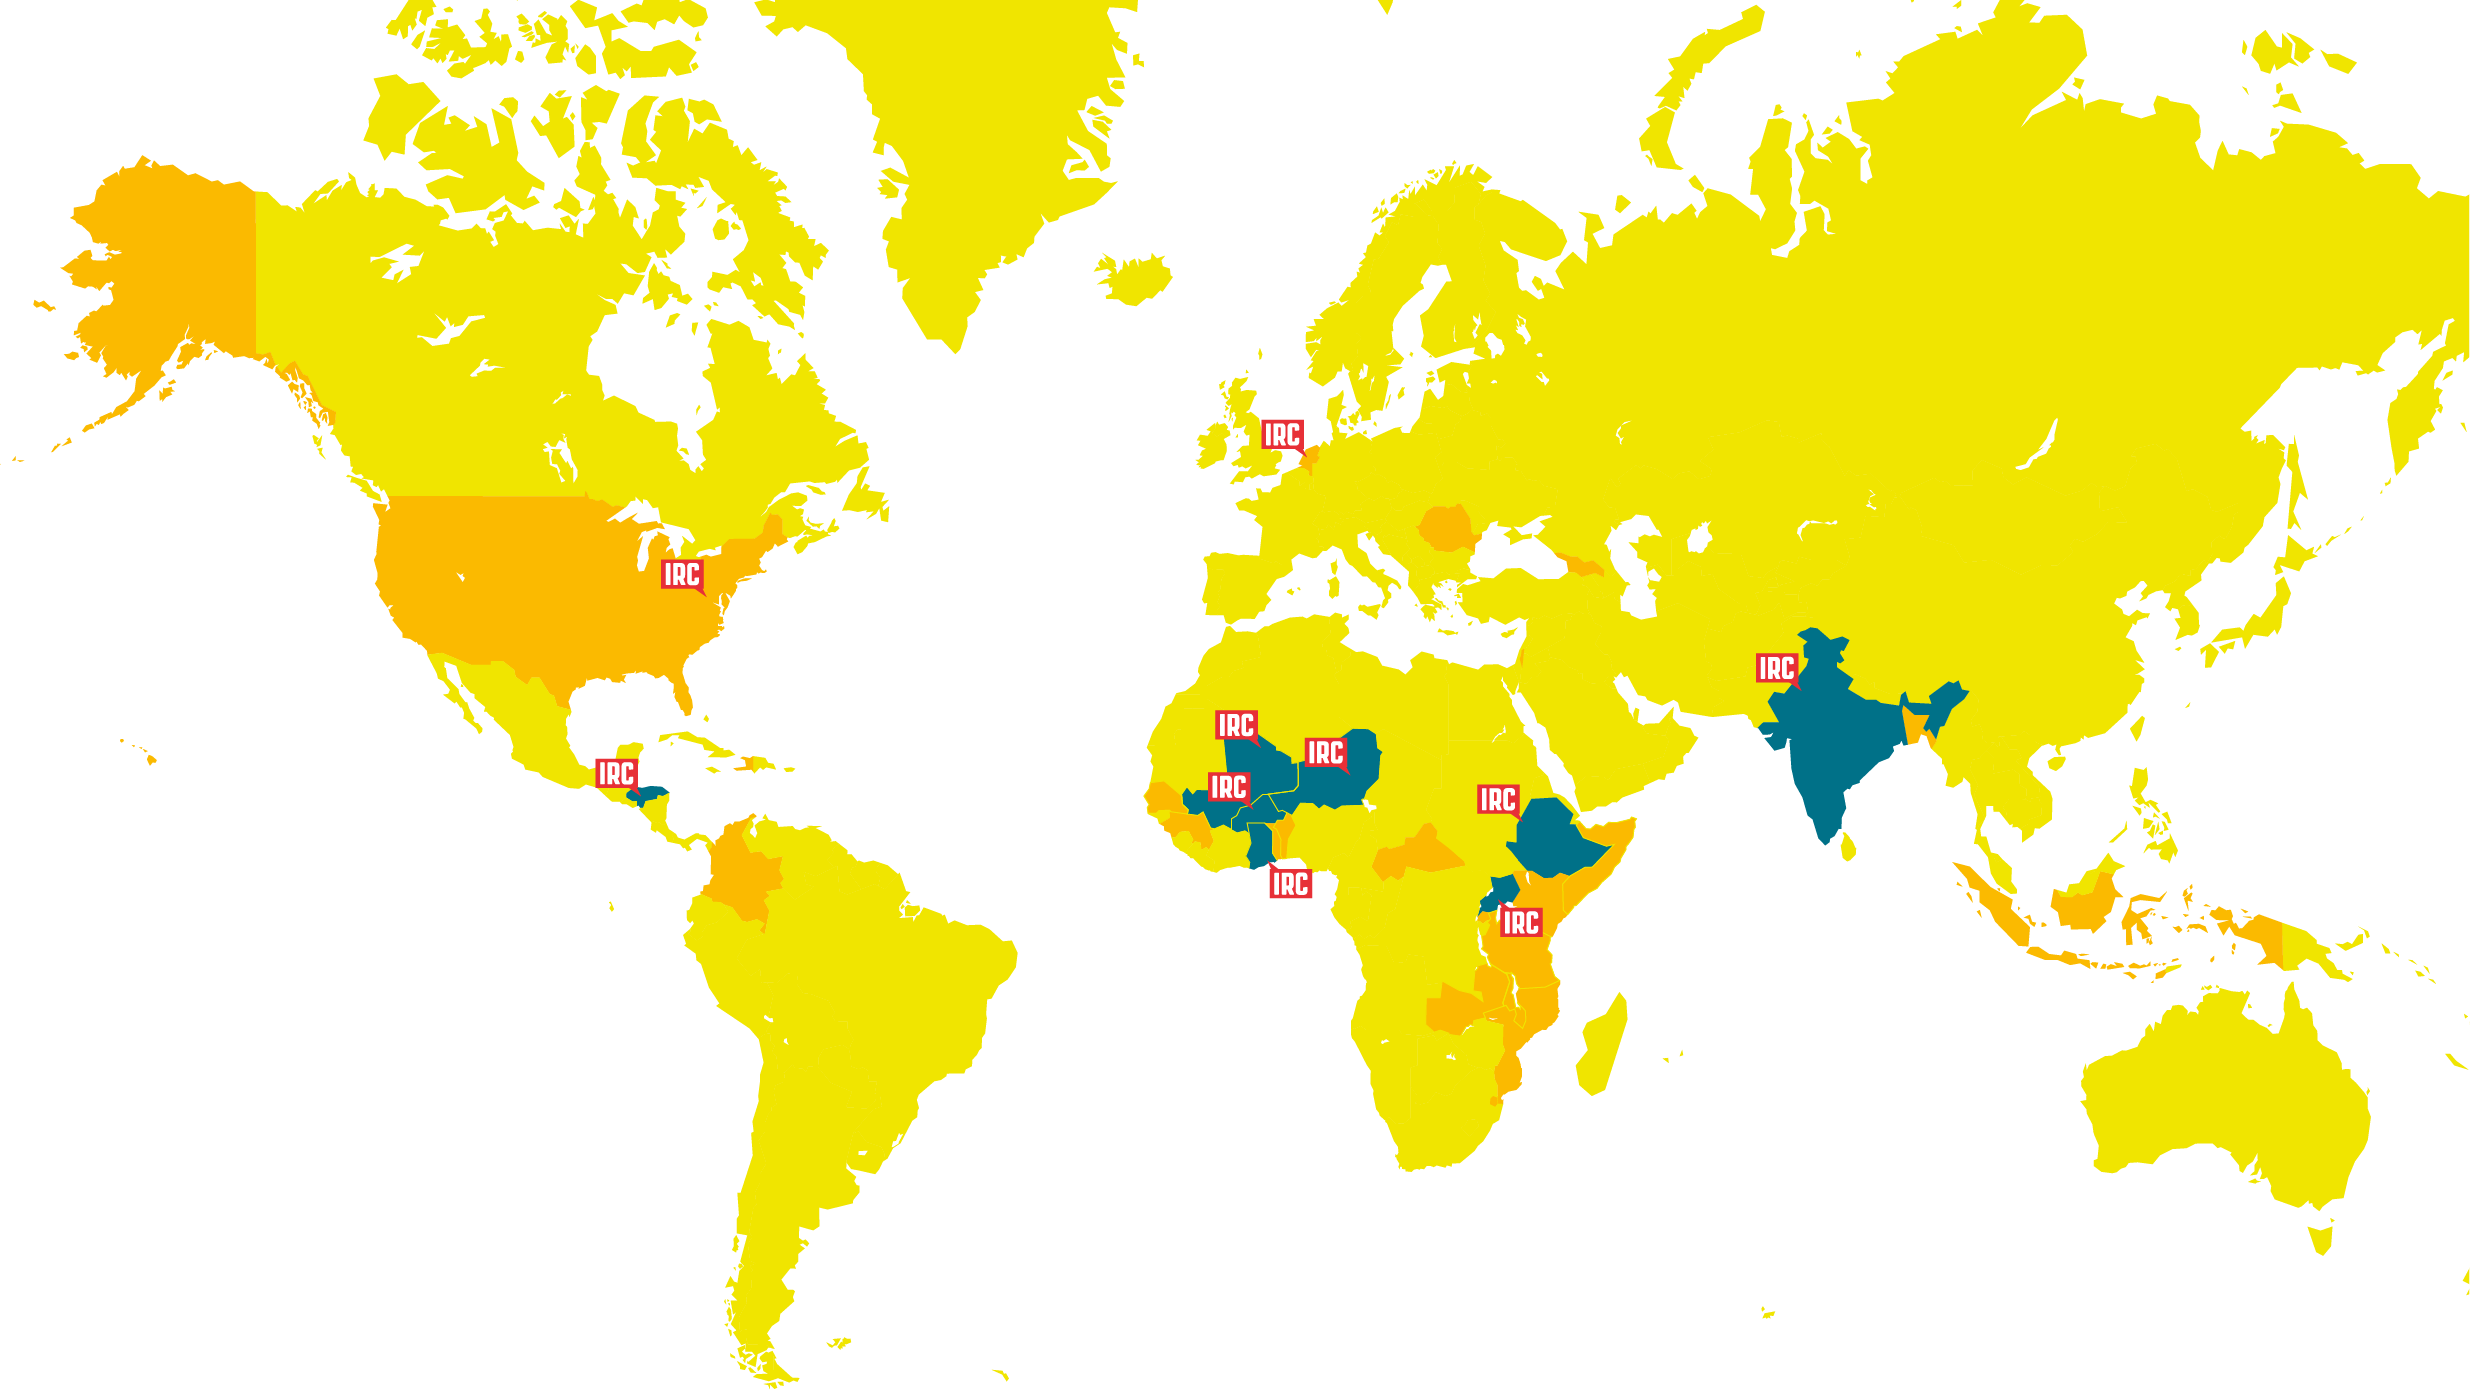 World map where IRC is active in 30 countries